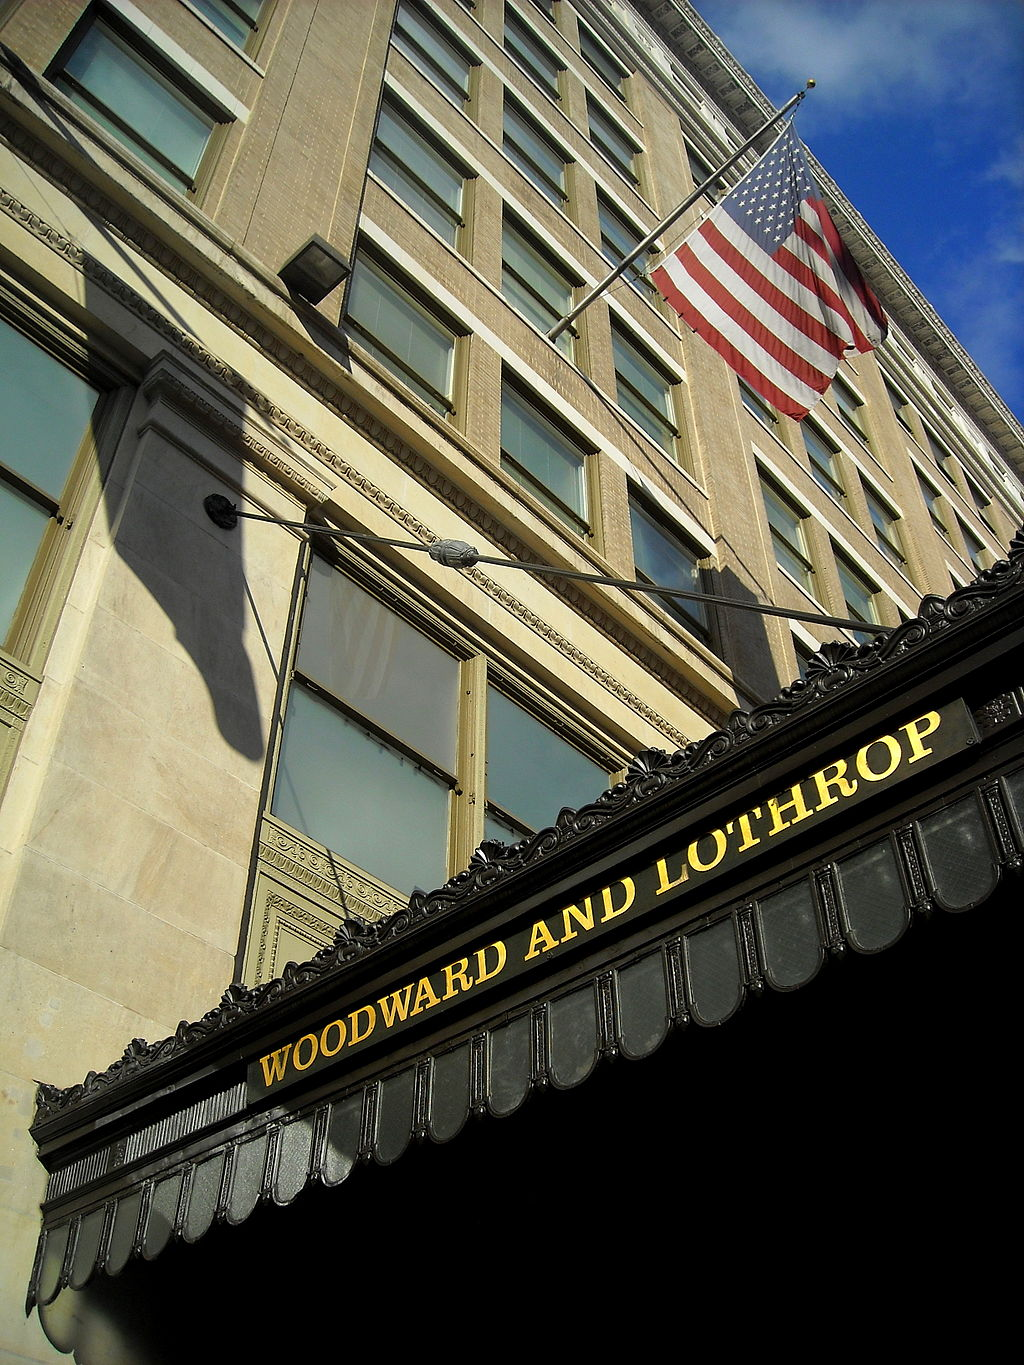 The Woodward & Lothrop Building retains some of its historic character, including awnings that bear its name. Photo courtesy of Wikimedia Commons.